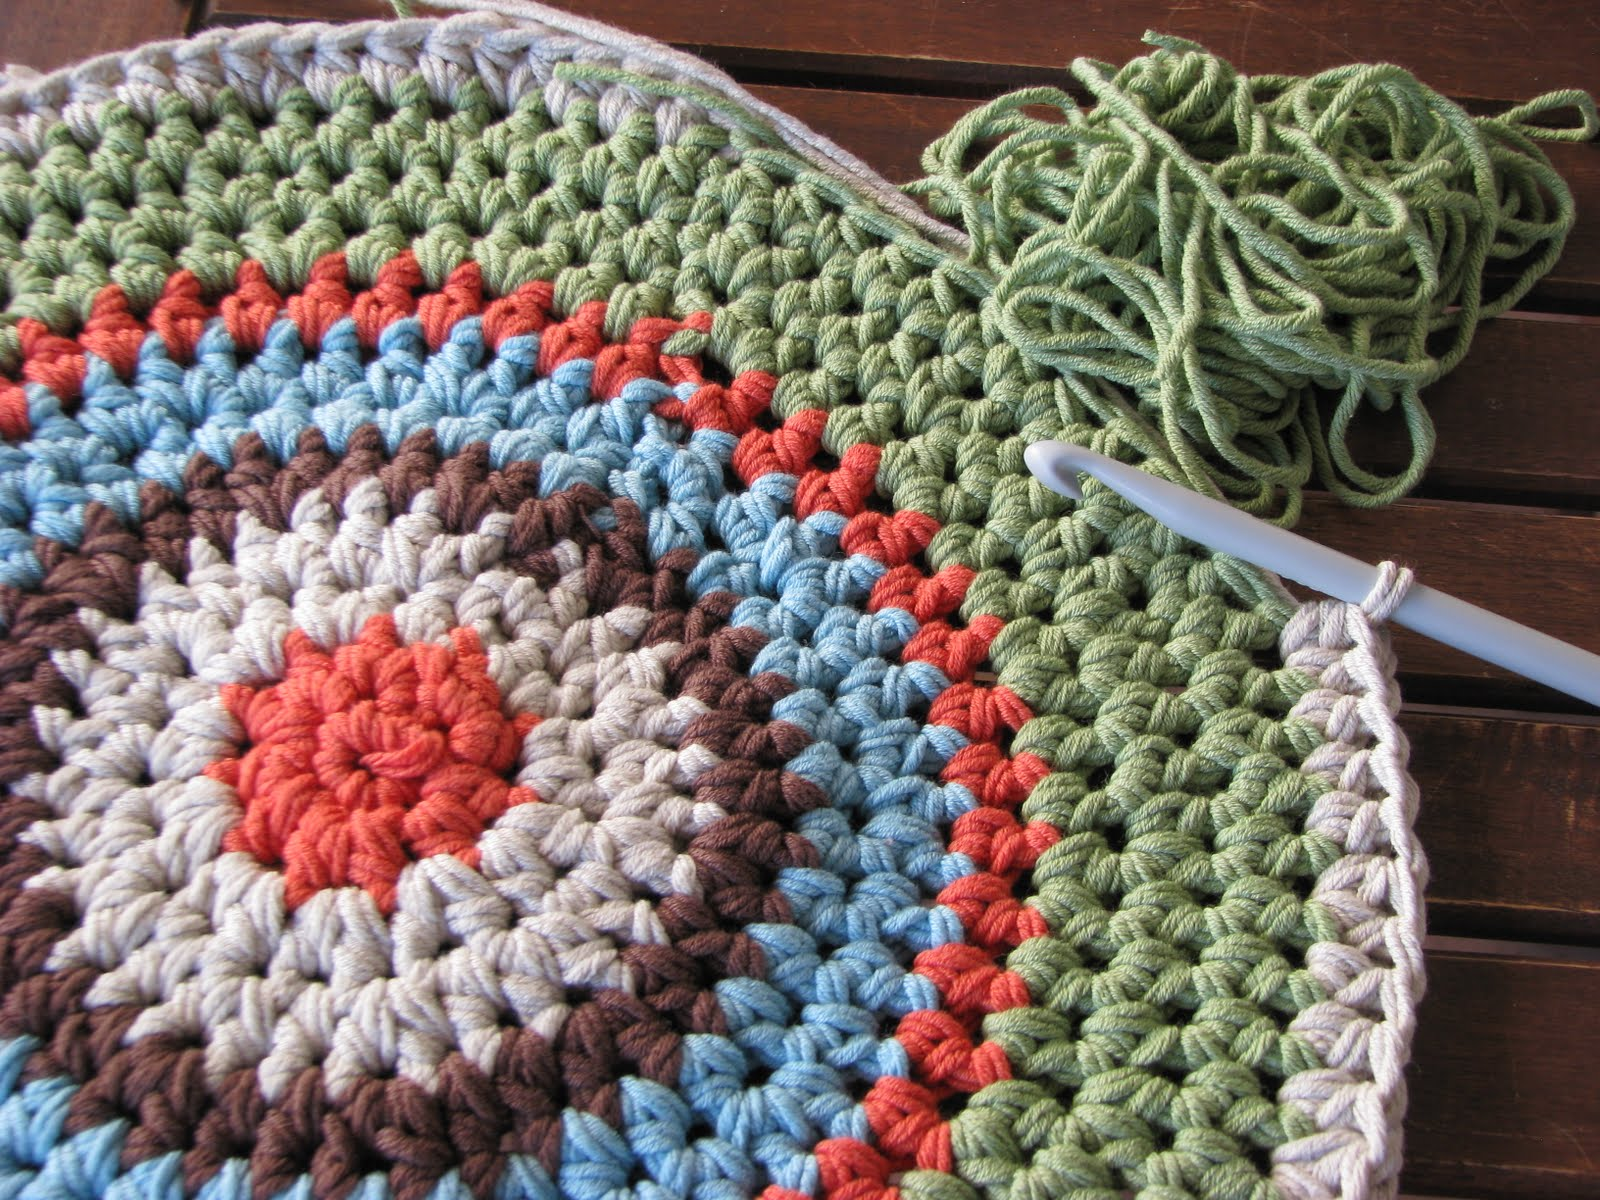 Crochet Patterns Using Thread : CROCHET YARN RUG PATTERN - Crochet Club